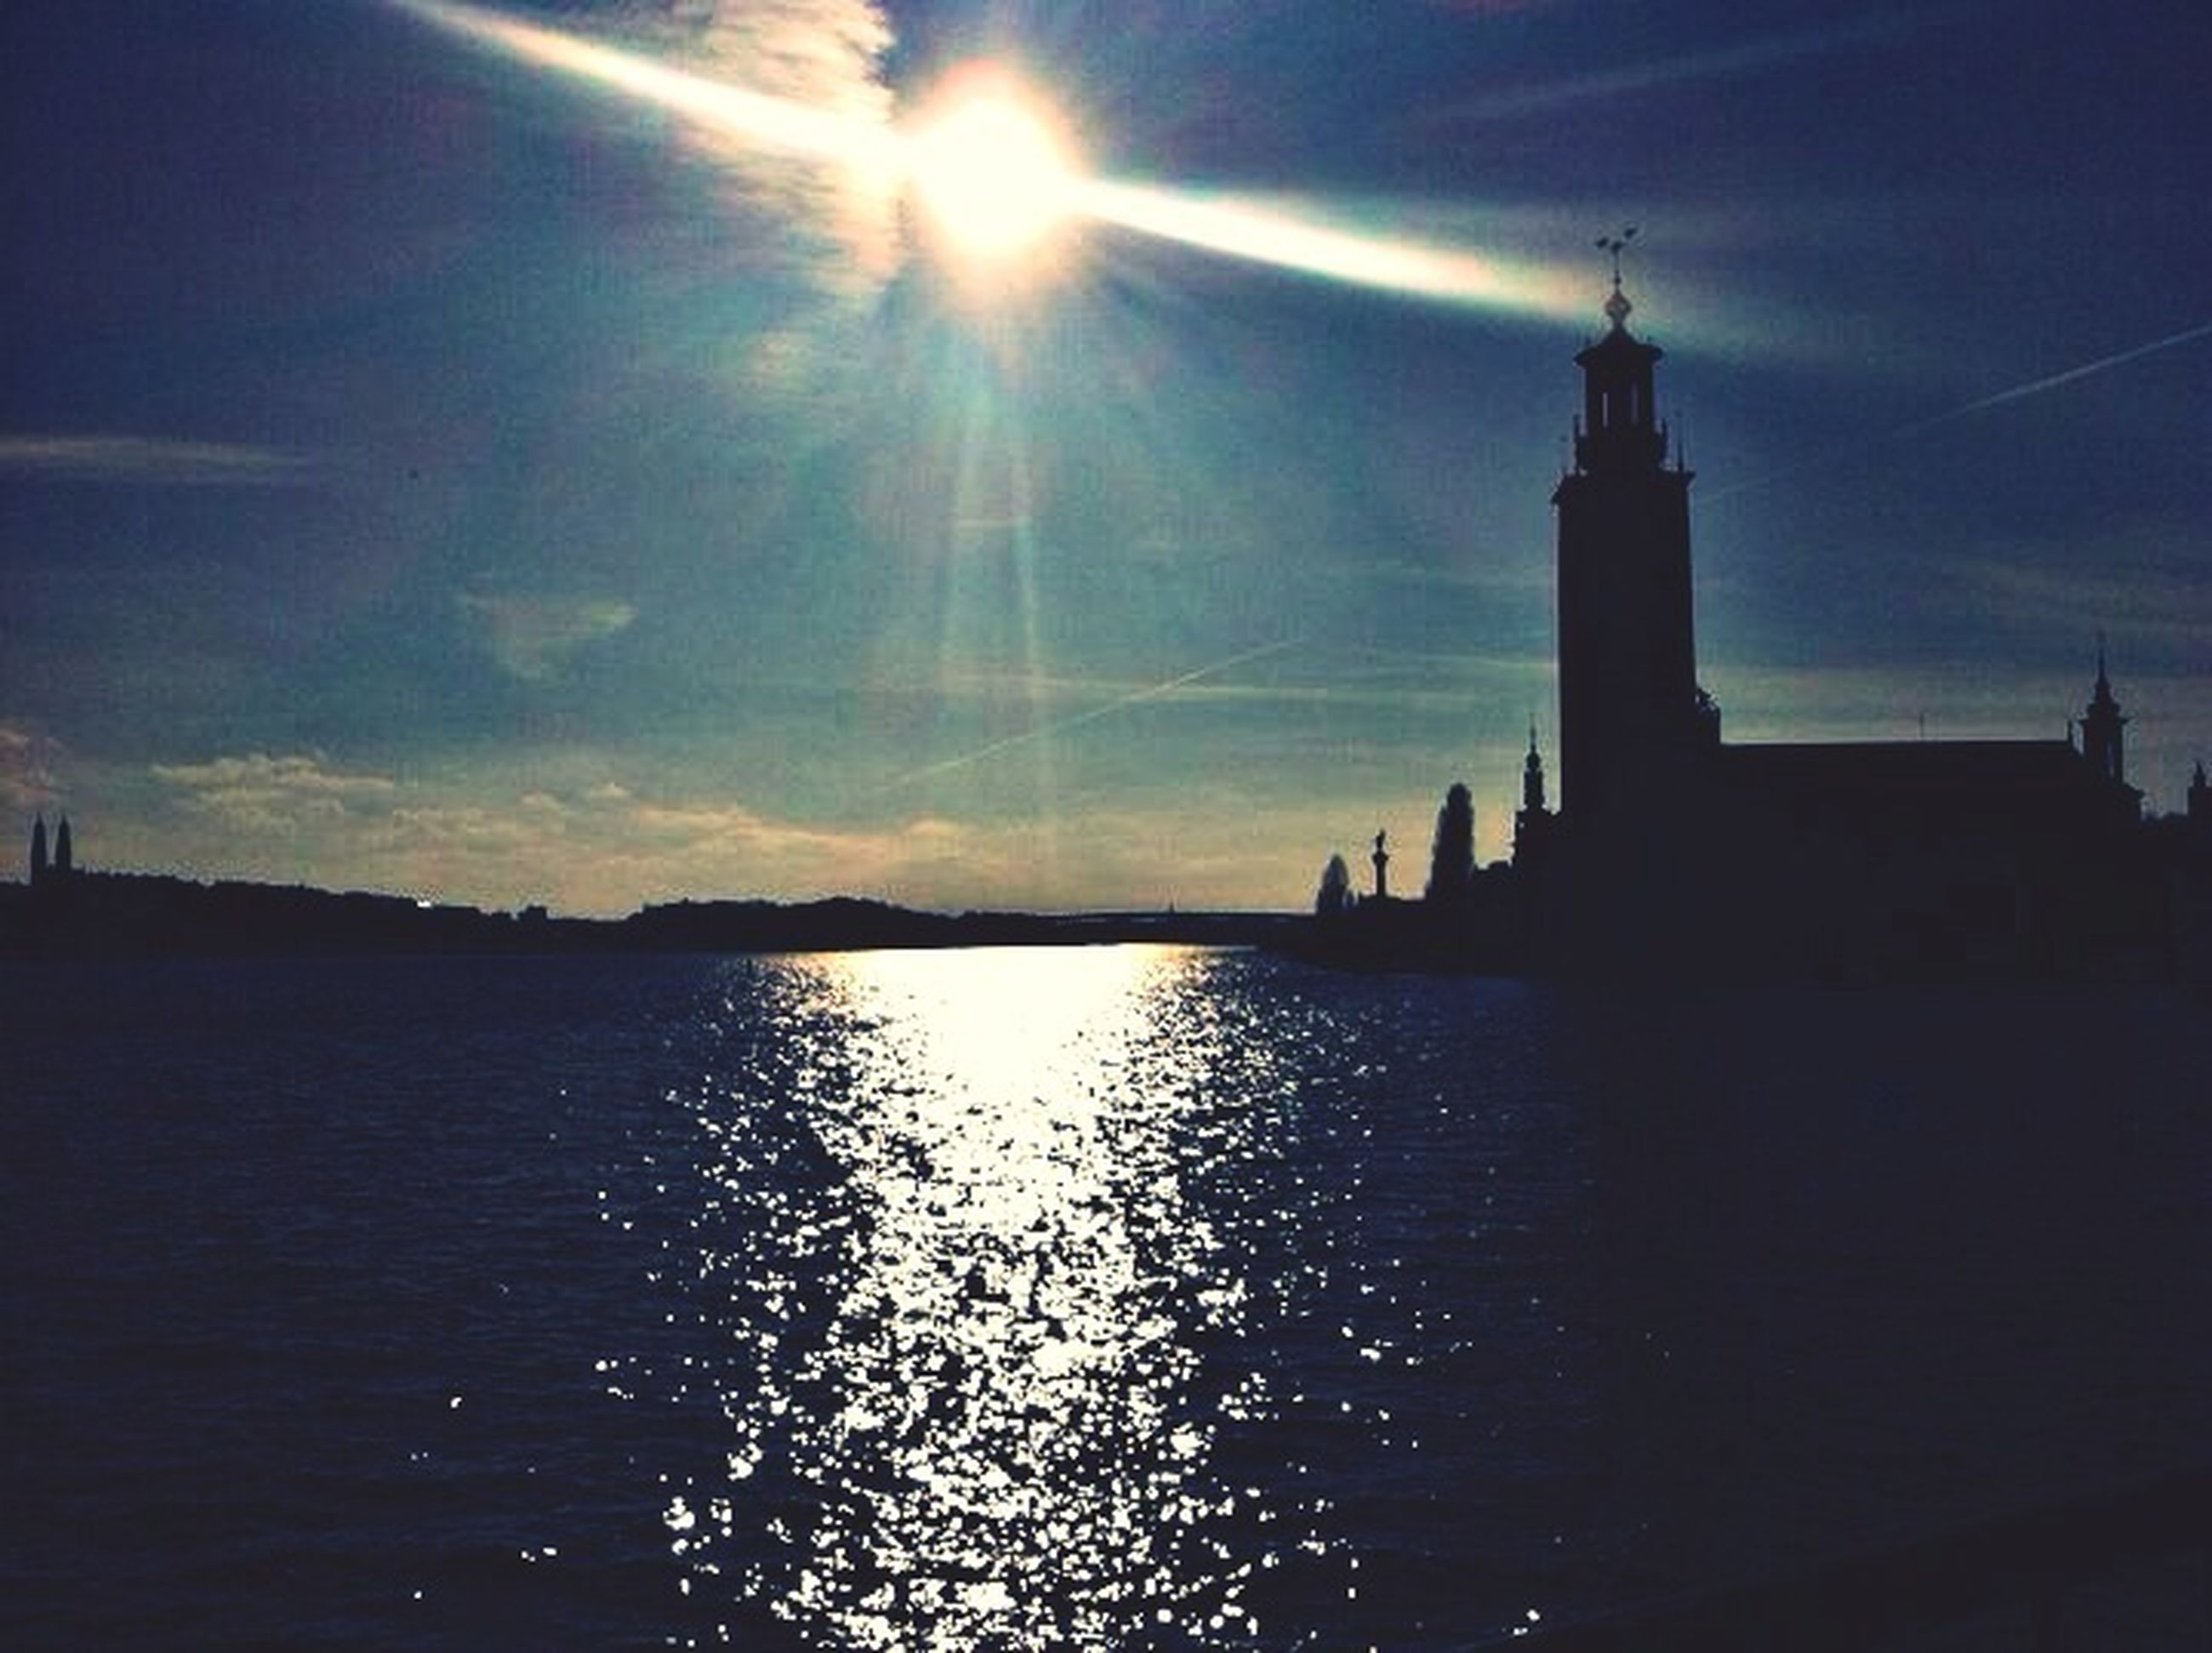 architecture, water, built structure, sky, silhouette, building exterior, waterfront, sun, sunset, reflection, river, sunlight, tower, rippled, sea, lighthouse, cloud - sky, cloud, travel destinations, sunbeam